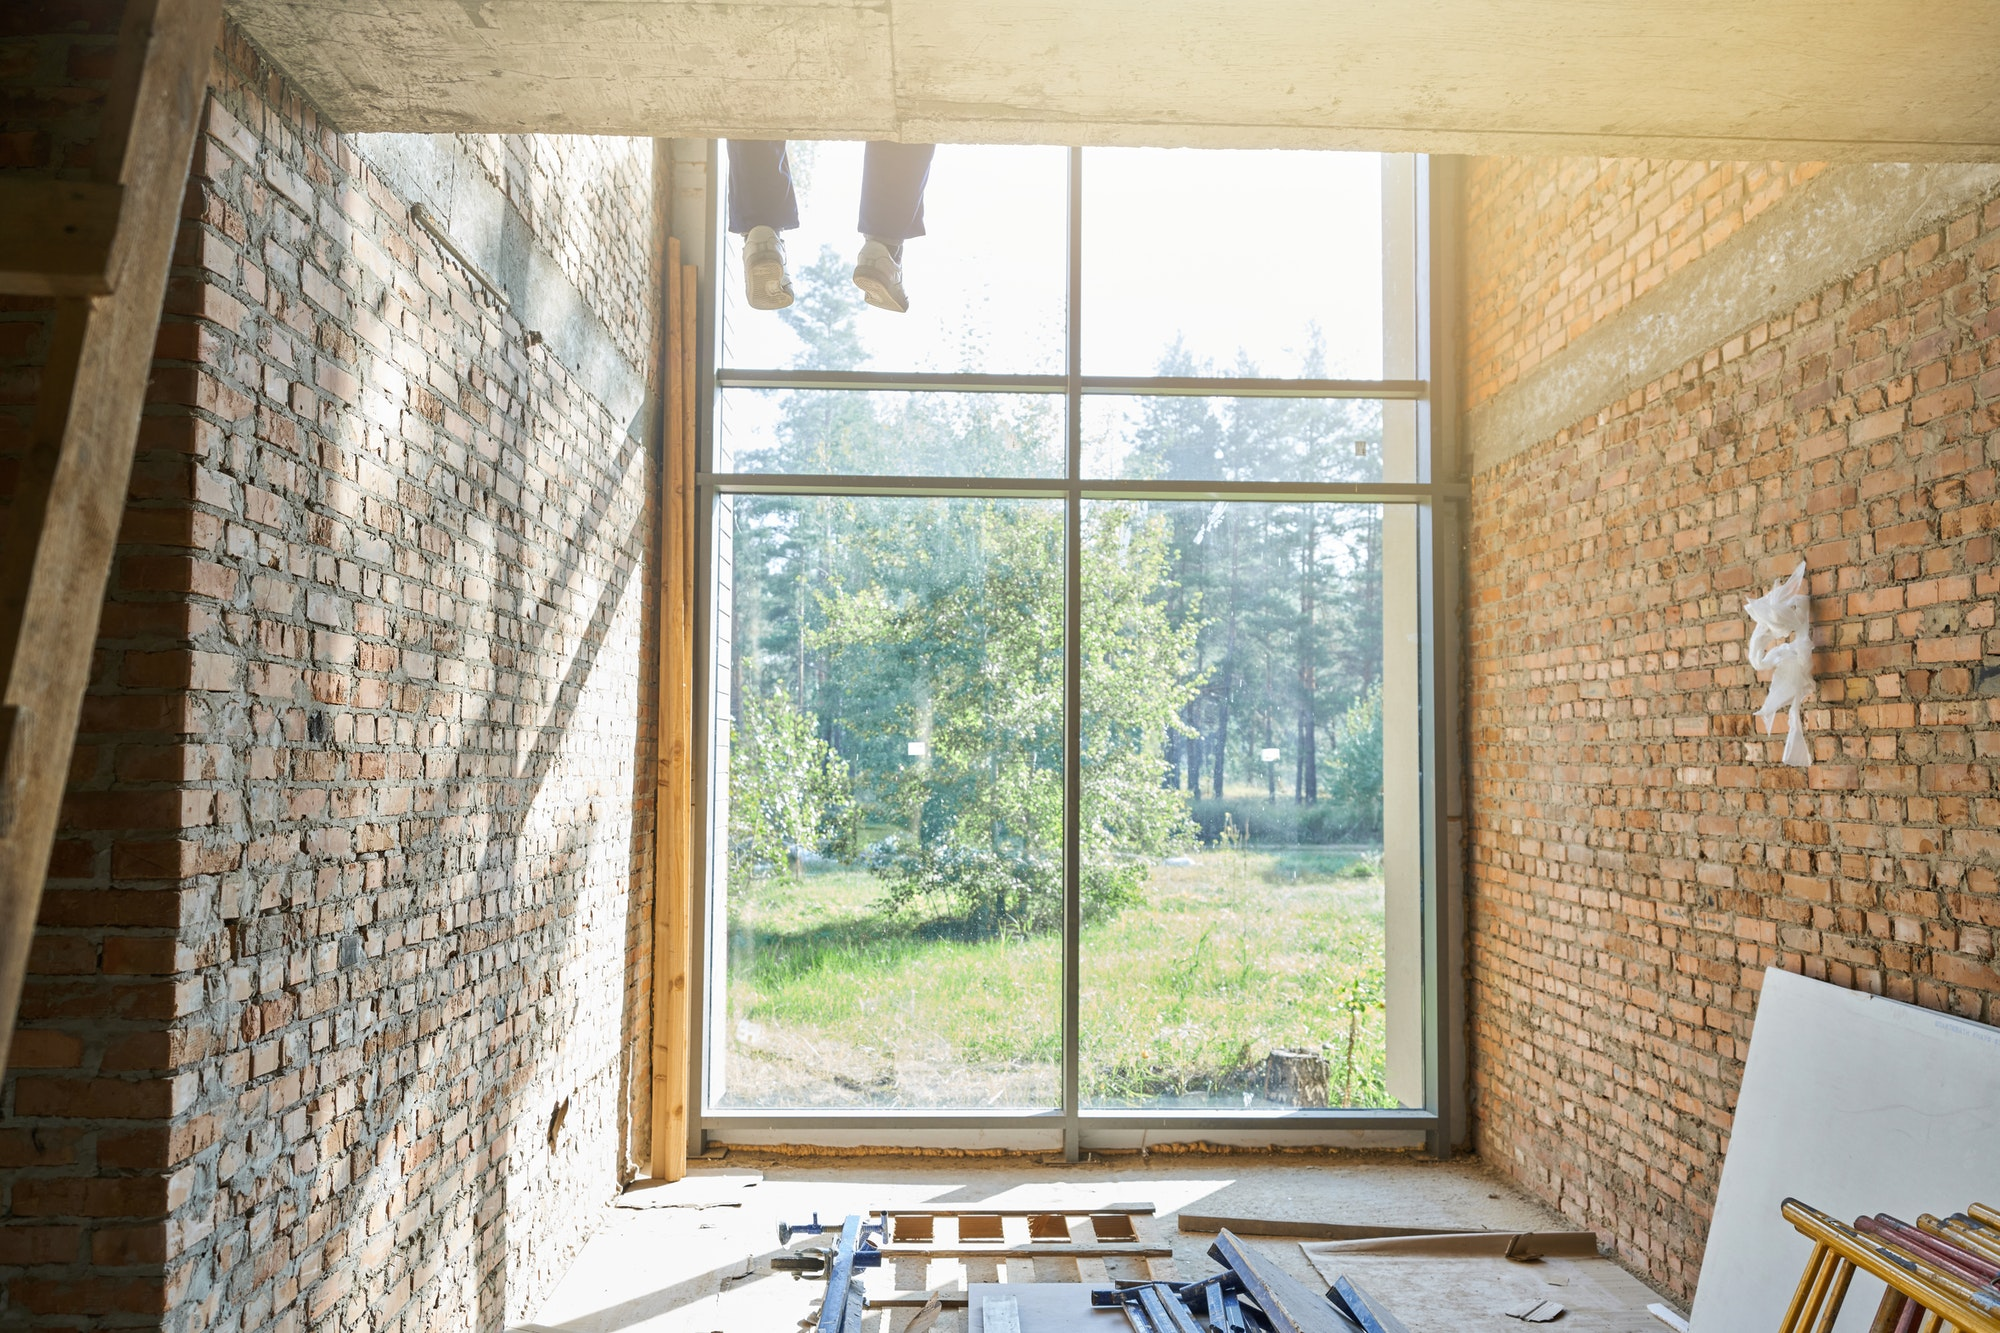 Building solutions. Interior view of a new house under construction on a sunny day